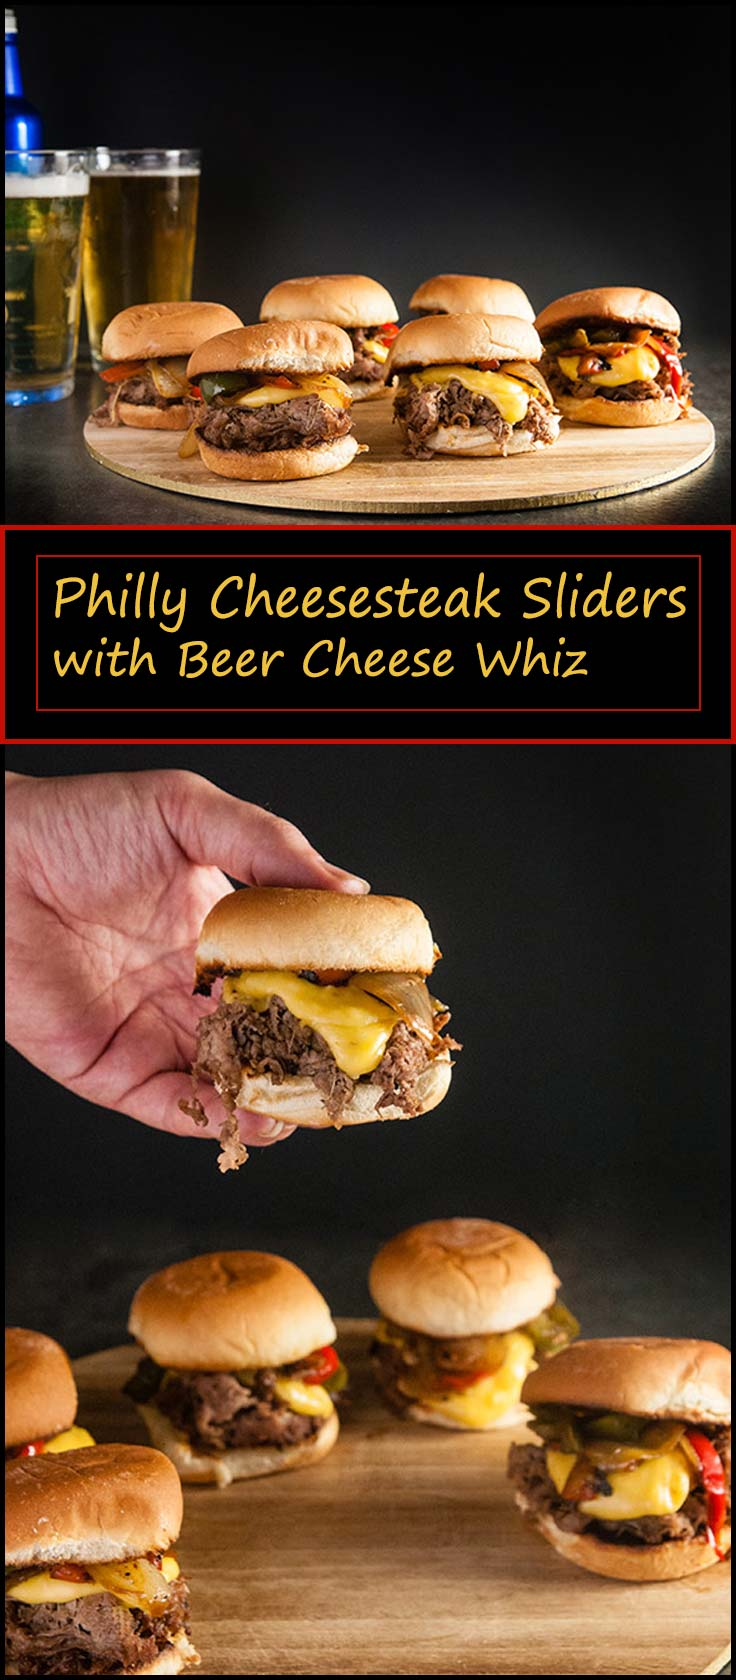 Philly Cheesesteak Sliders with Homemade Beer Cheese Whiz from www.seasonedsprinkles.com